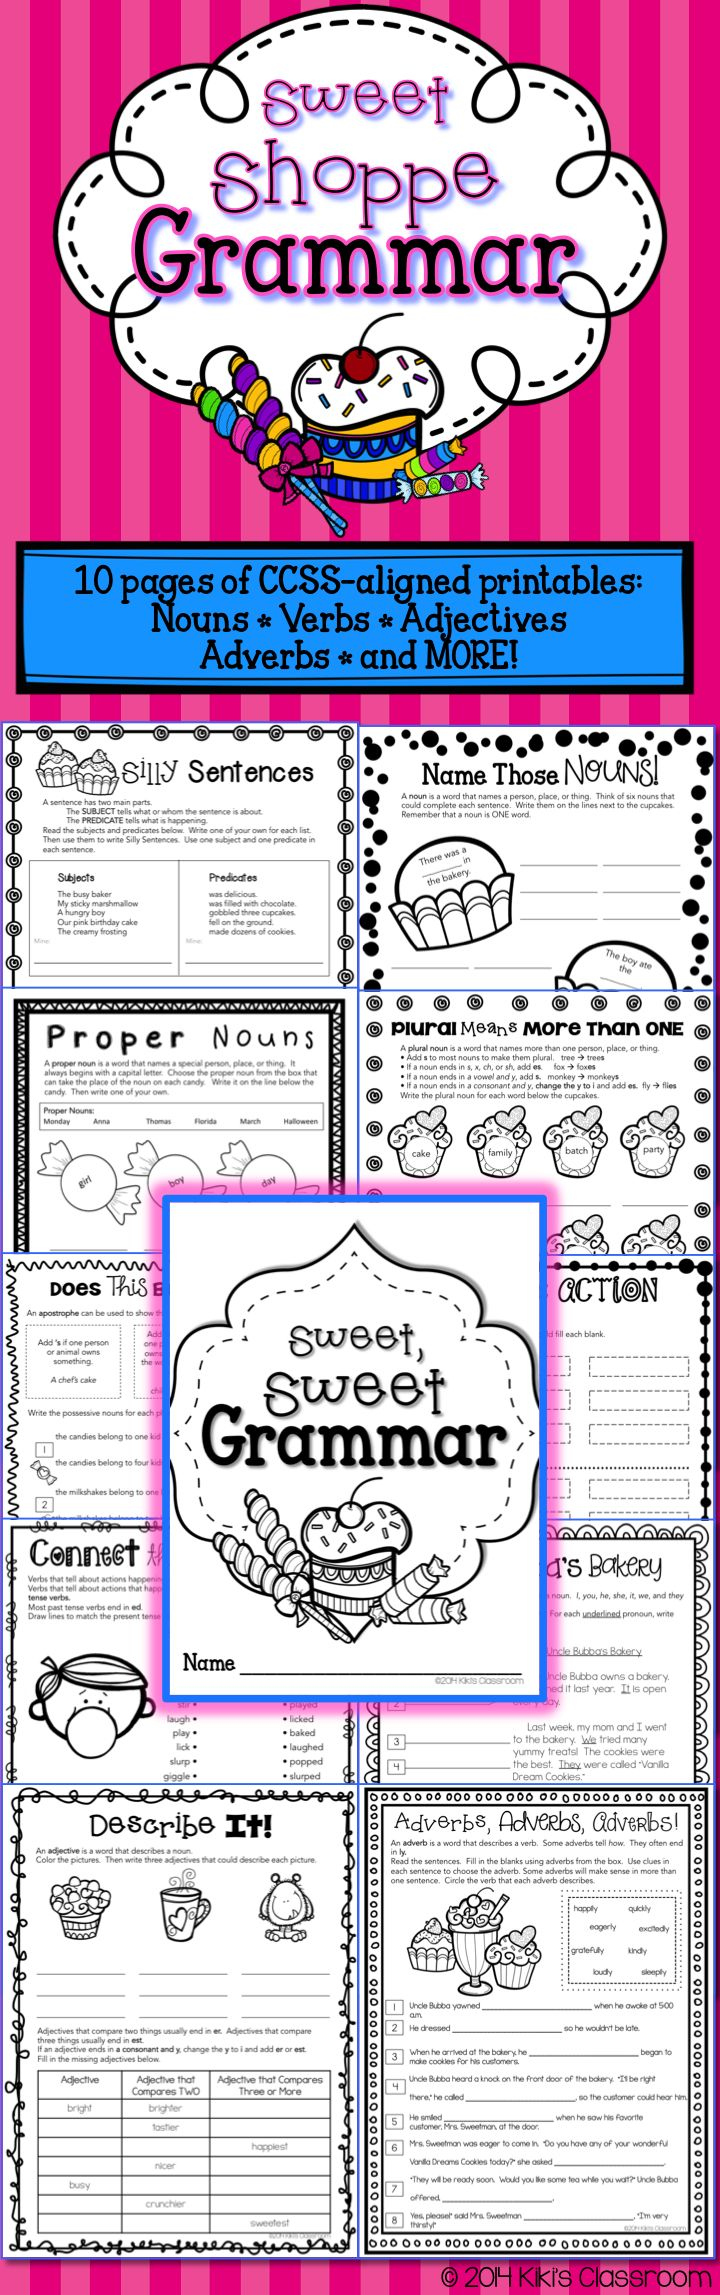 Grammar 3rd Grade - Parts of Speech Worksheets - Parts of Speech Activities